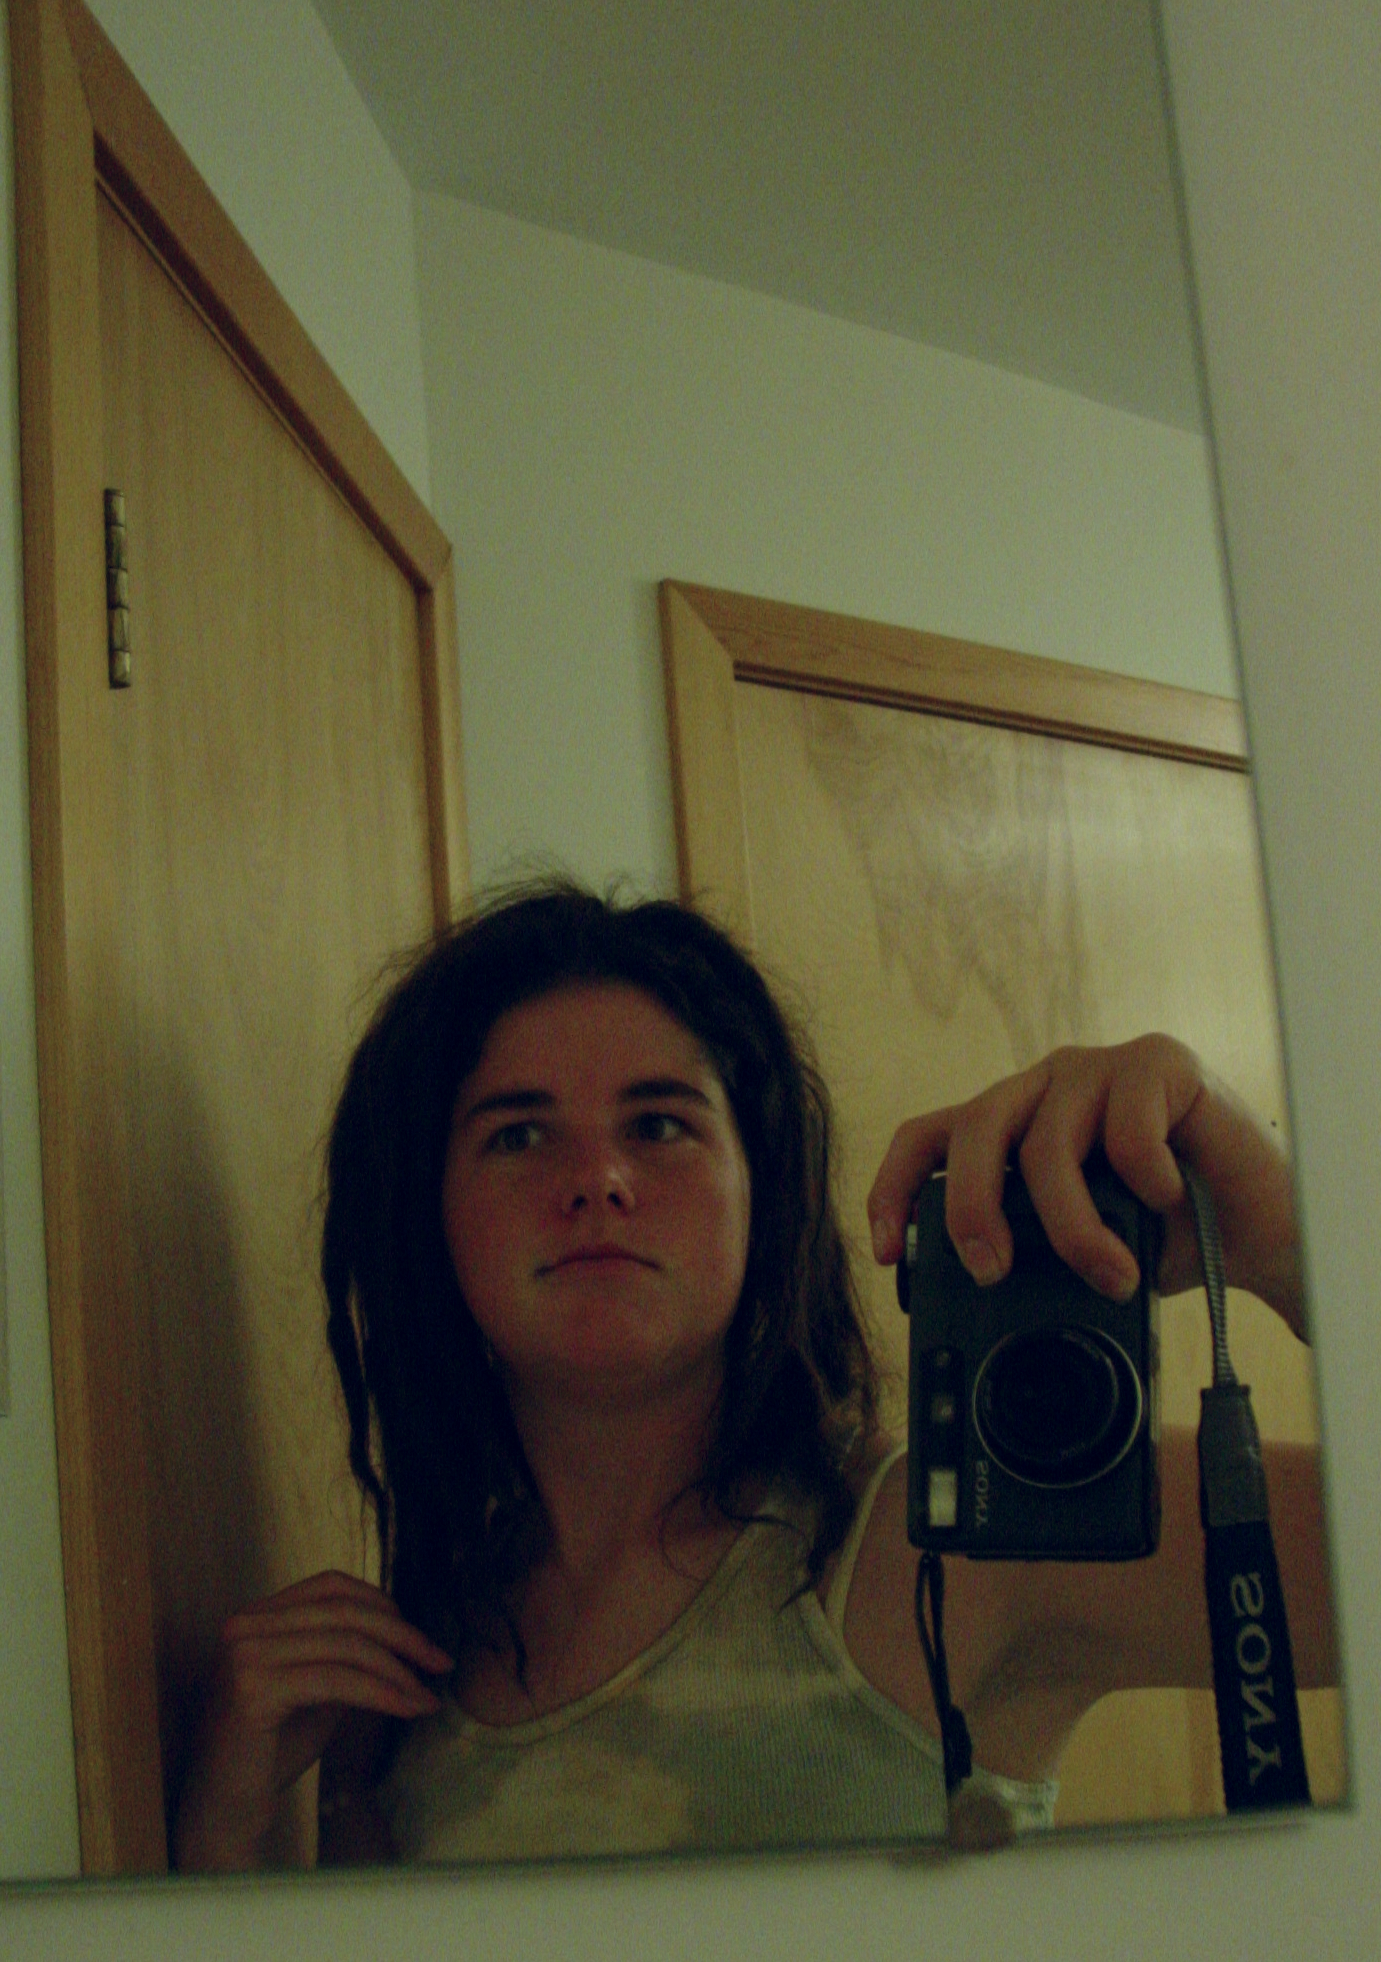 This is some serious selfie action! Check out the bulky old digital camera. :) Taken on the final day of my first retreat back in 2005. Also note the tie-dyed shirt I'm wearing. Apologies for the poor image quality!